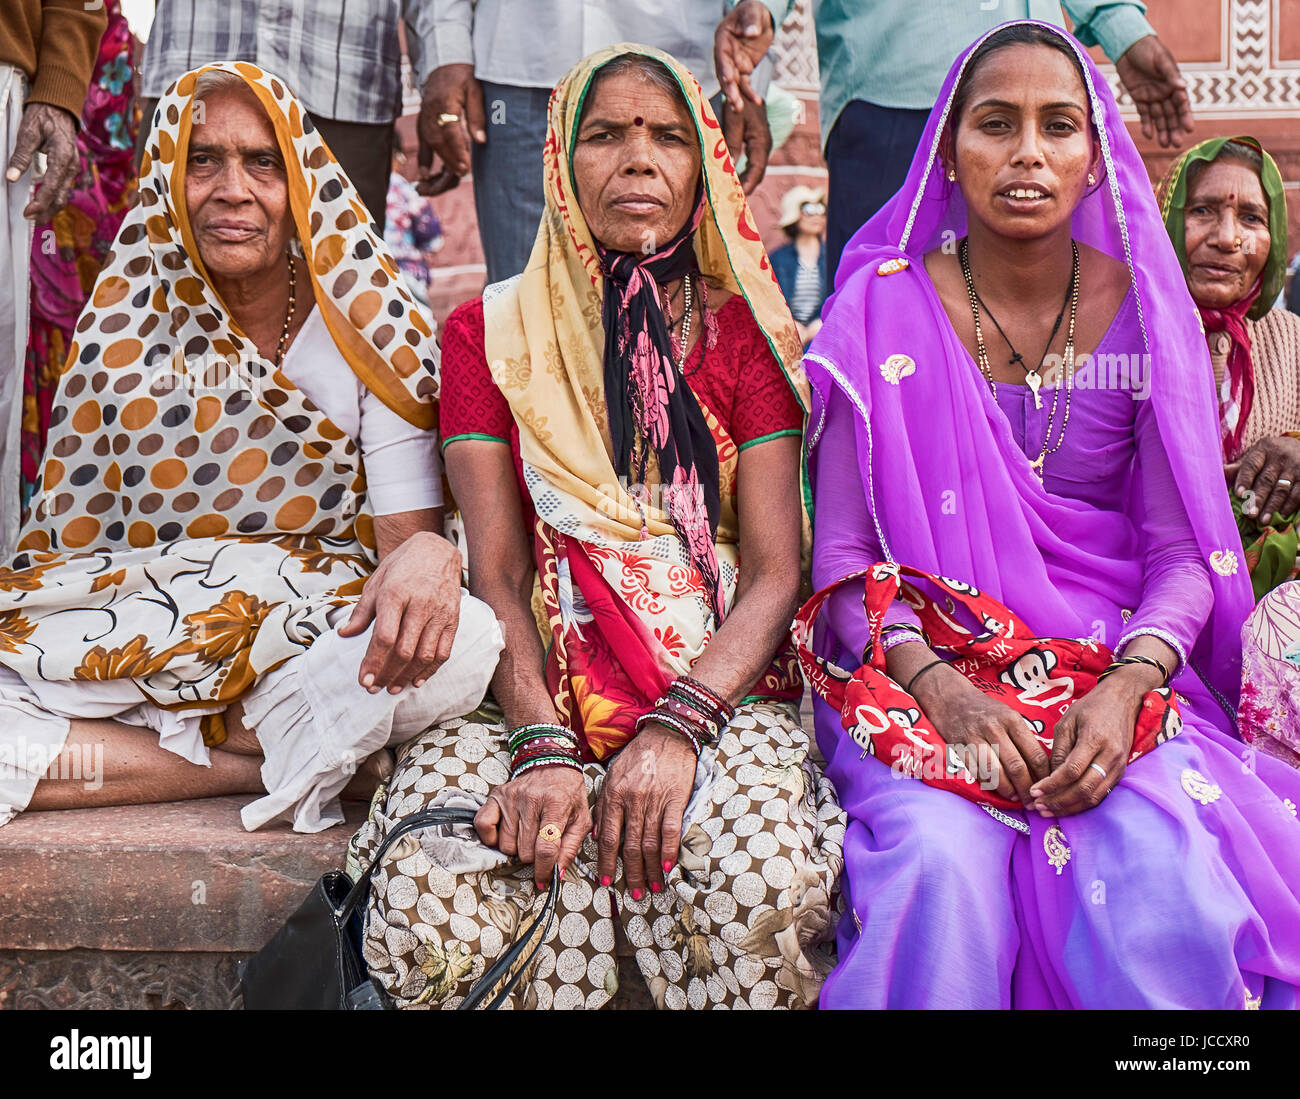 AGRA, INDIA - NOVEMBER 19, 2016: Three women in colorful saris and hijabs sit near the entrance to the Great Gate - Stock Image